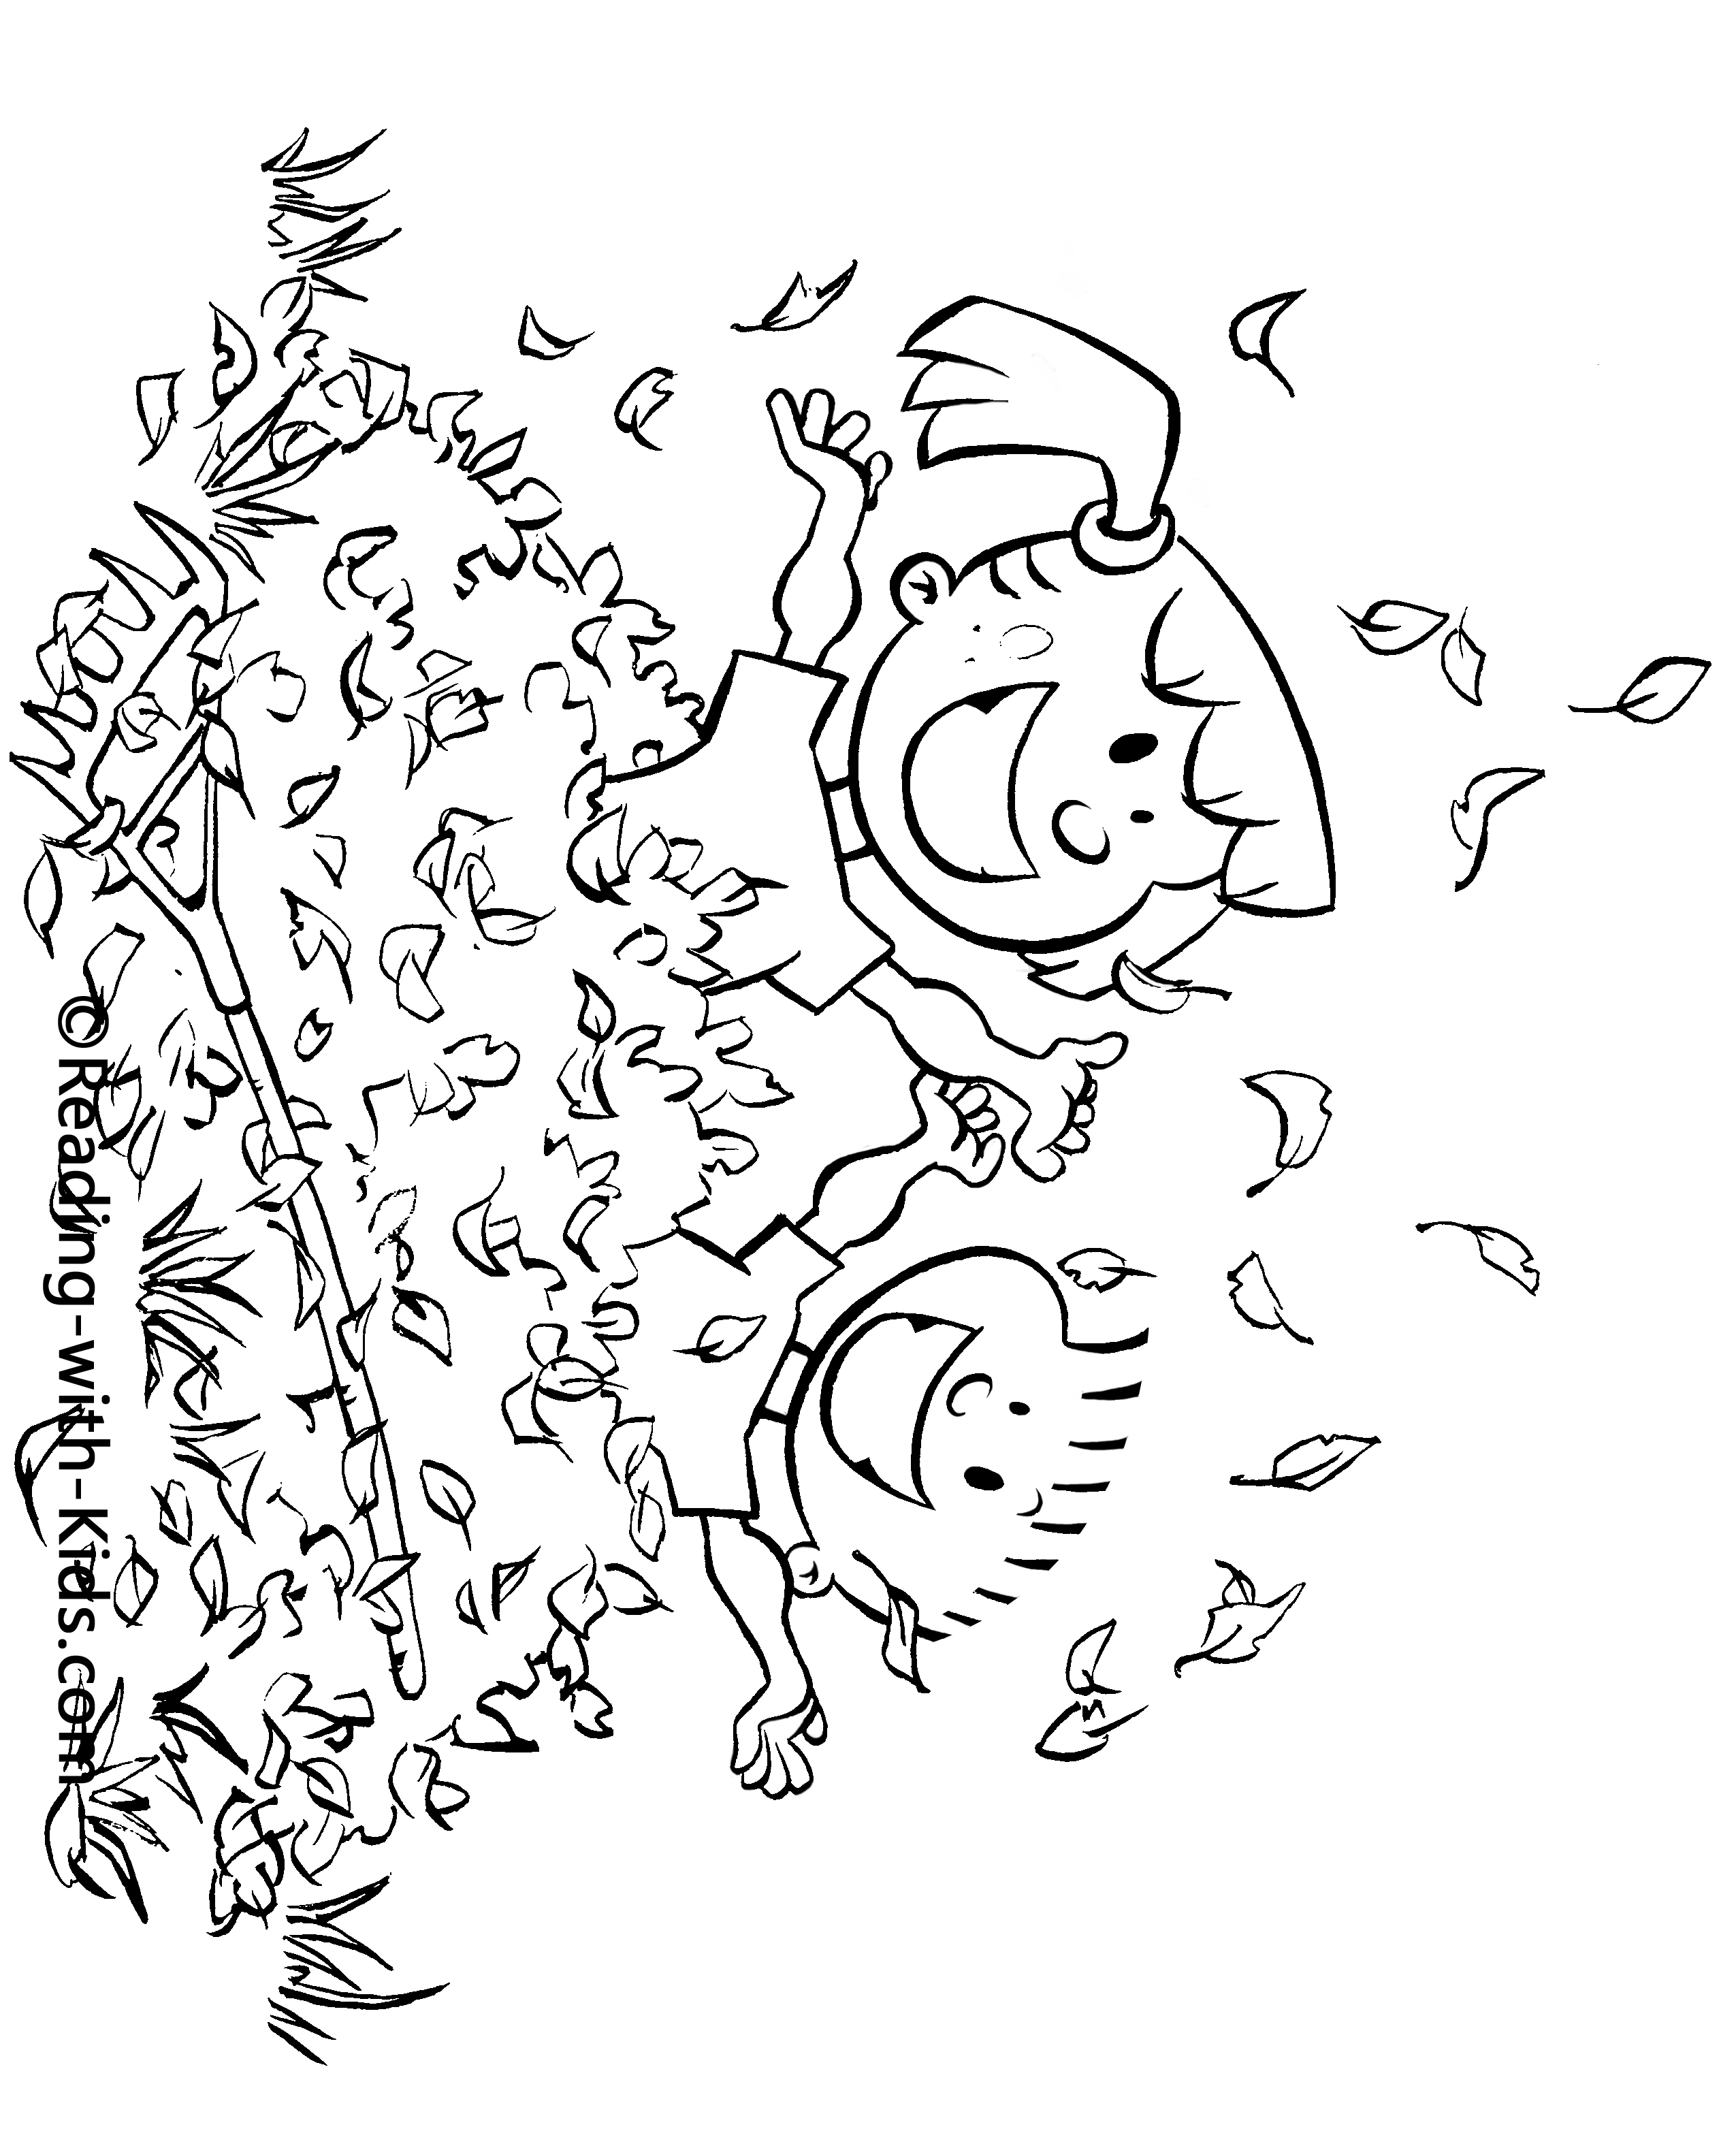 Book reading coloring page -  Fall Leaves Coloring Page